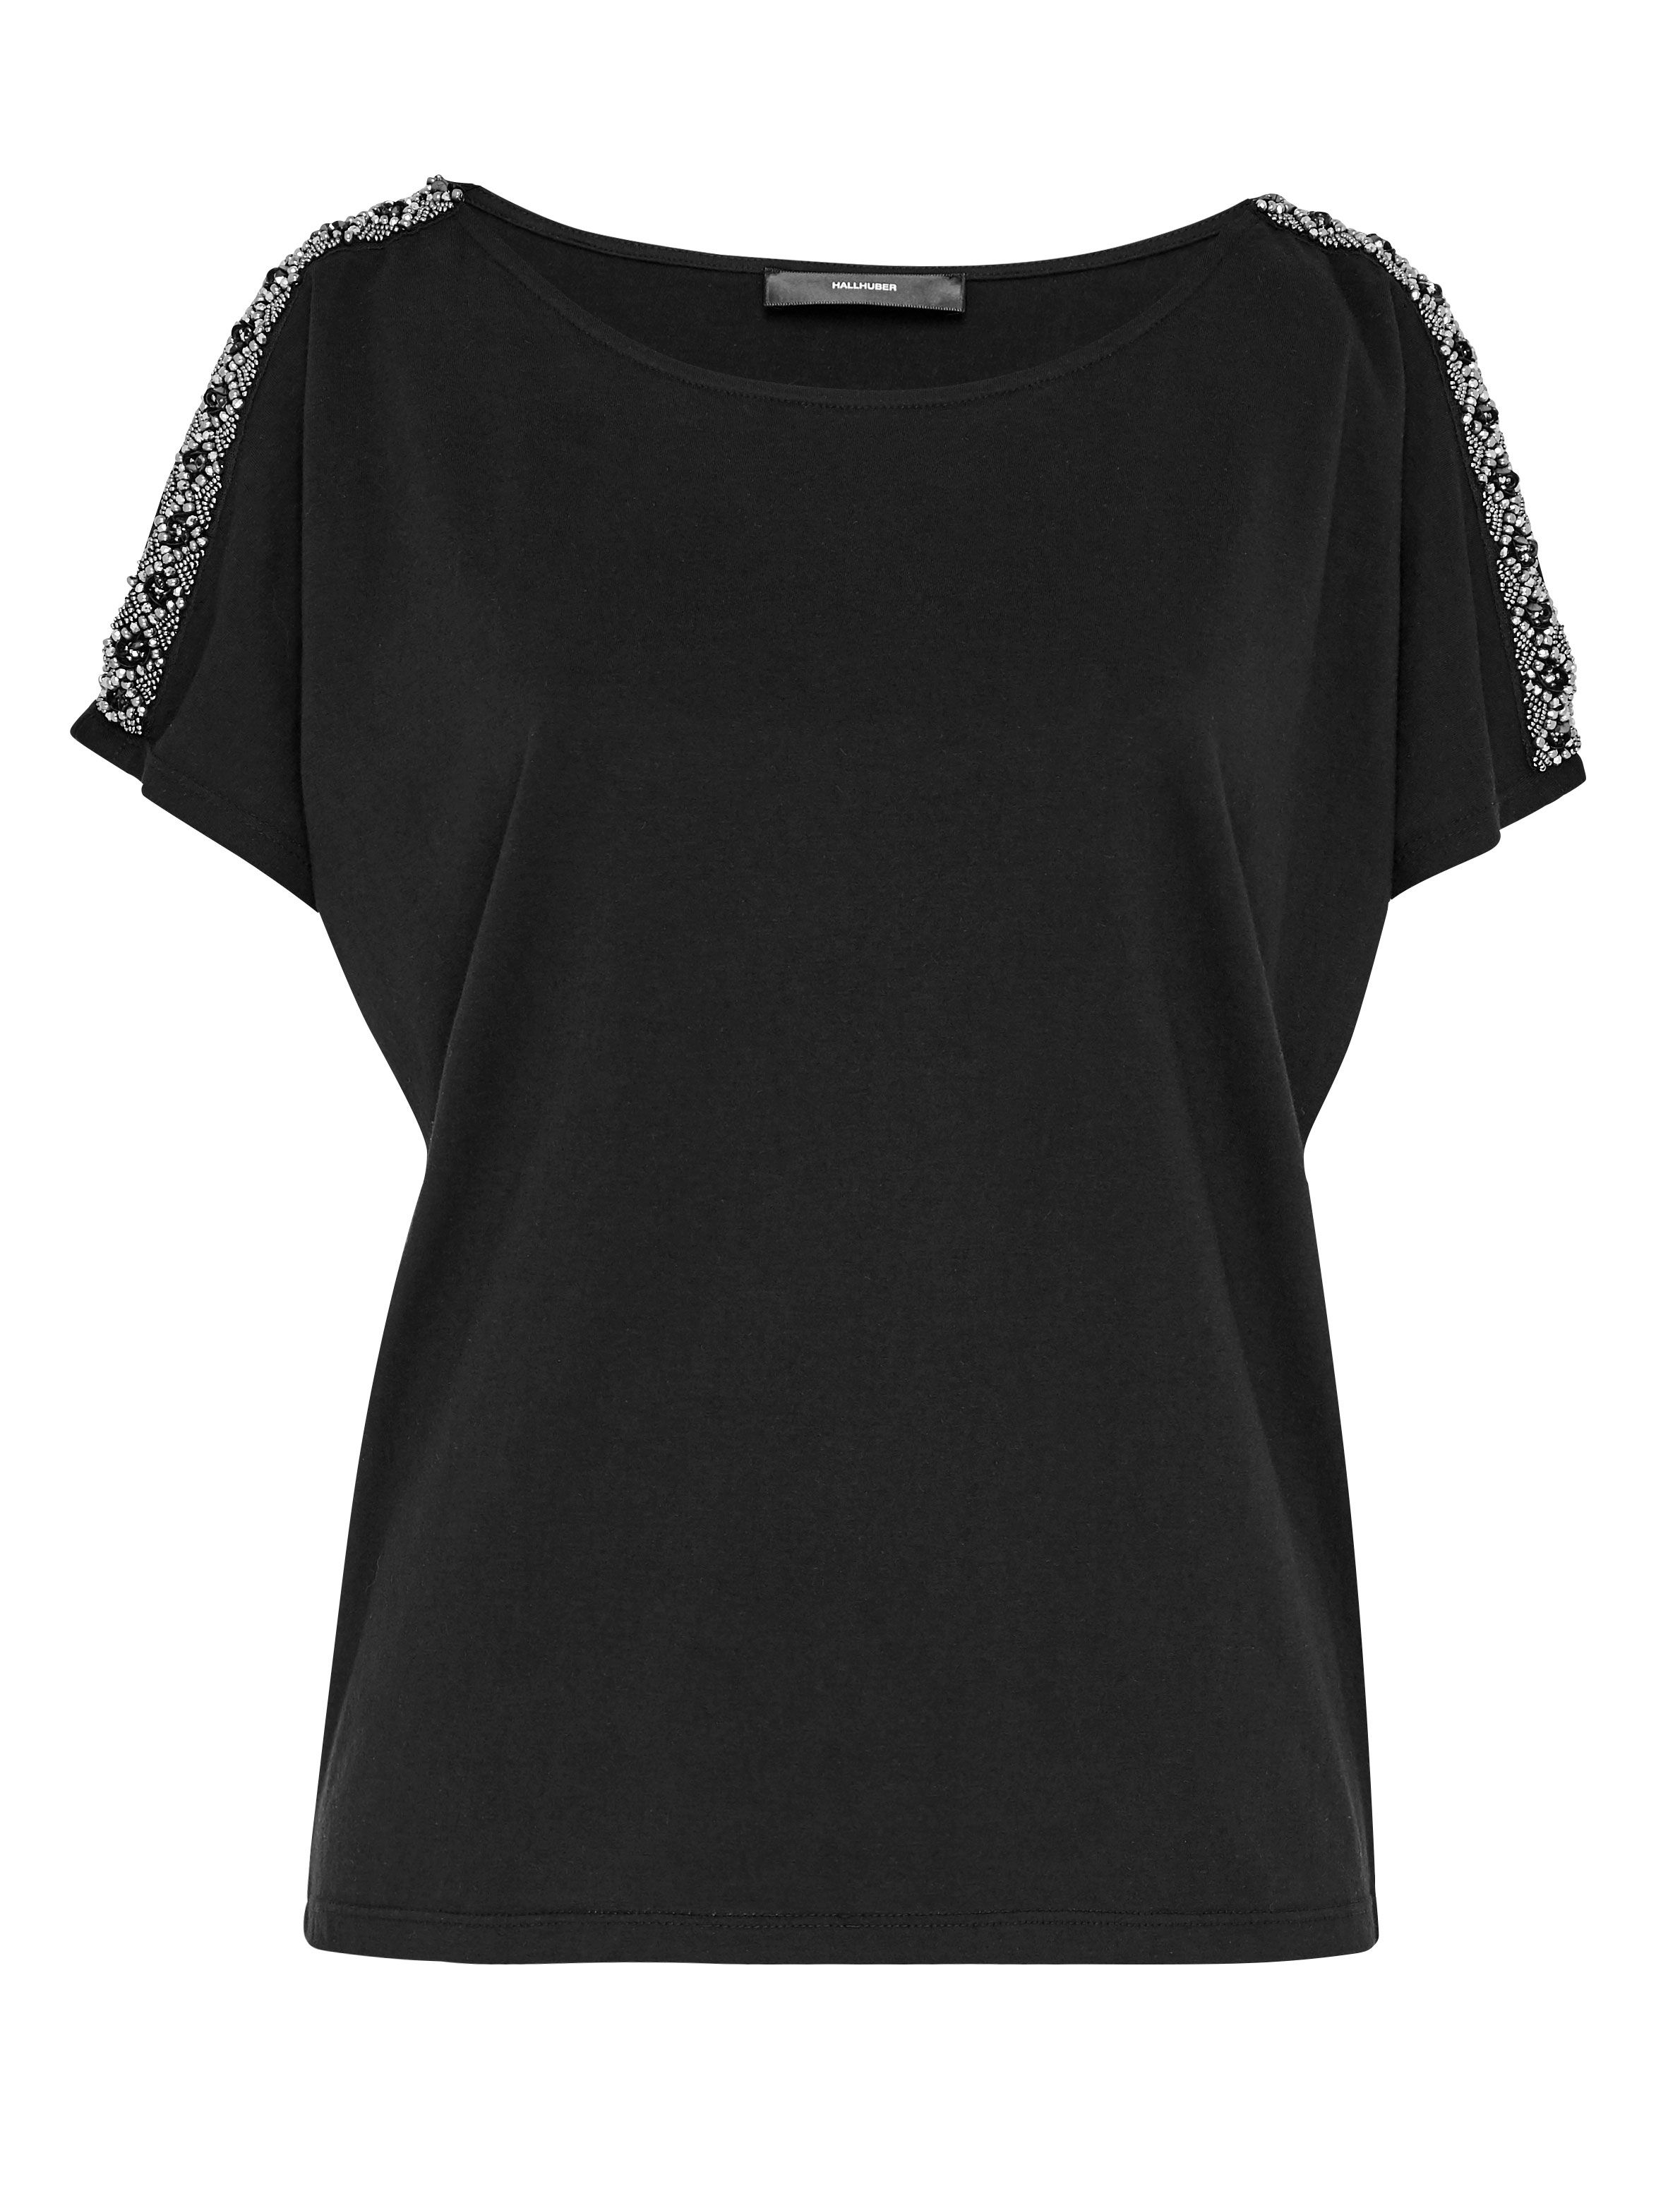 Hallhuber Beaded Cold-Shoulder Blouse, Black